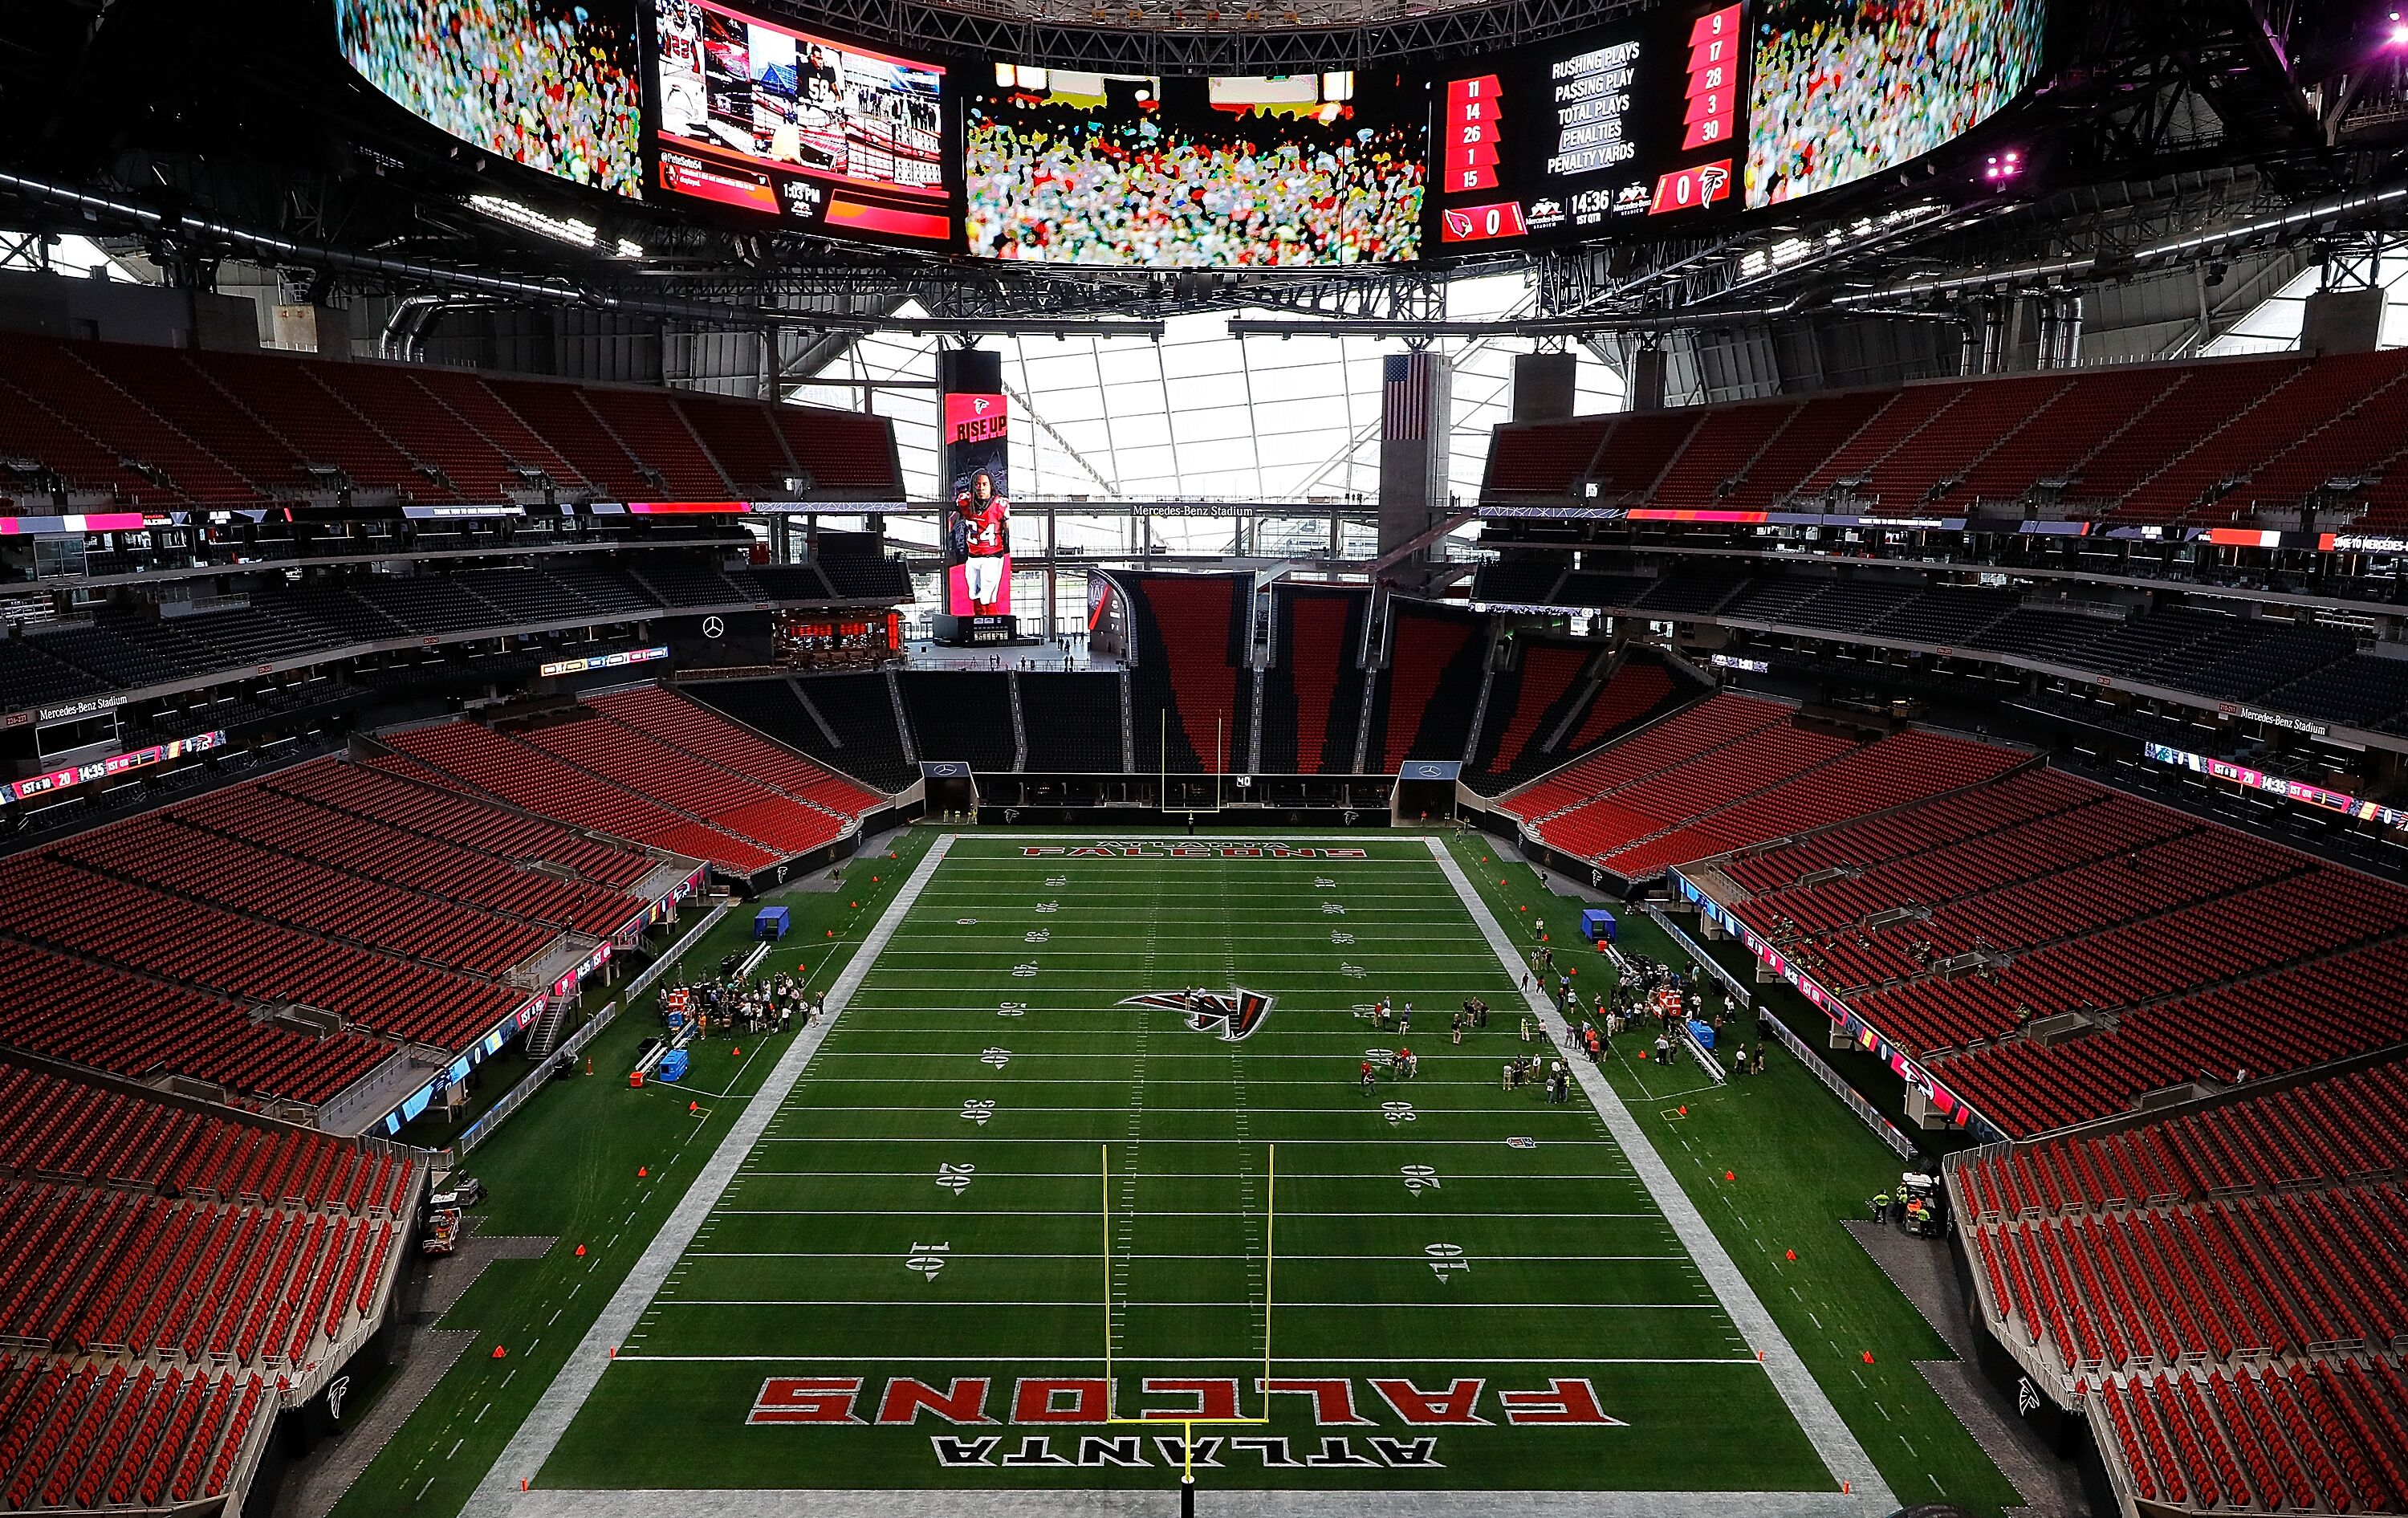 Atlanta Falcons Vs Cardinals Live Stream Watch Preseason